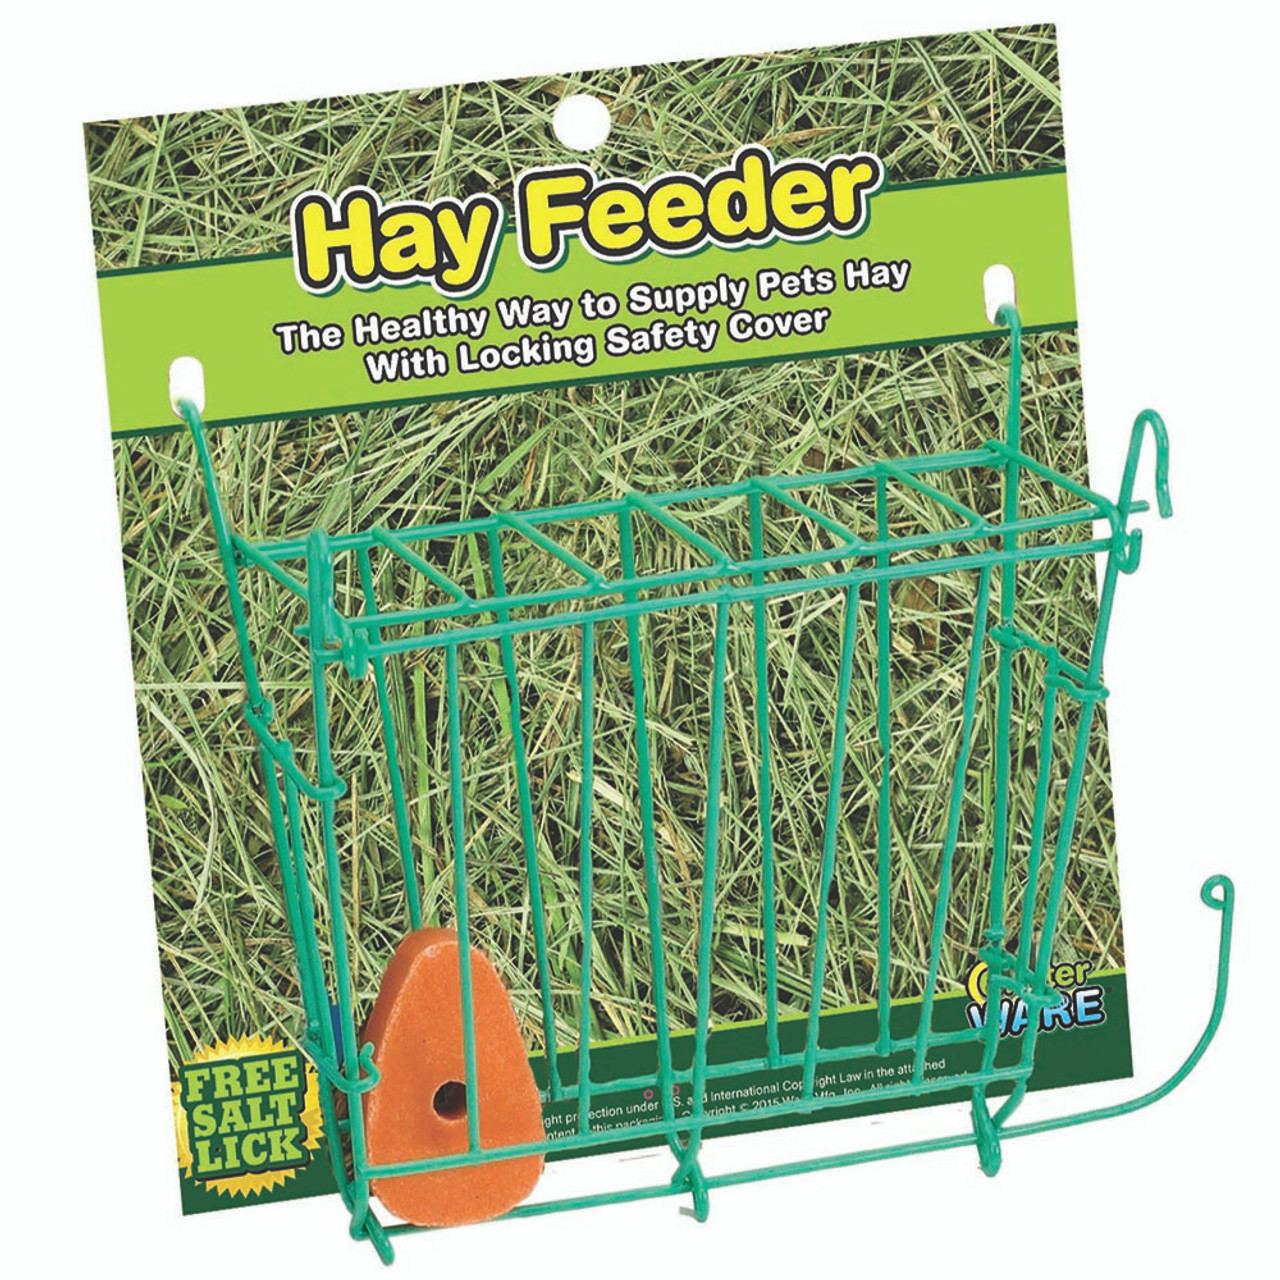 Critter Ware Hay Feeder with Free Salt Lick for Small Animals